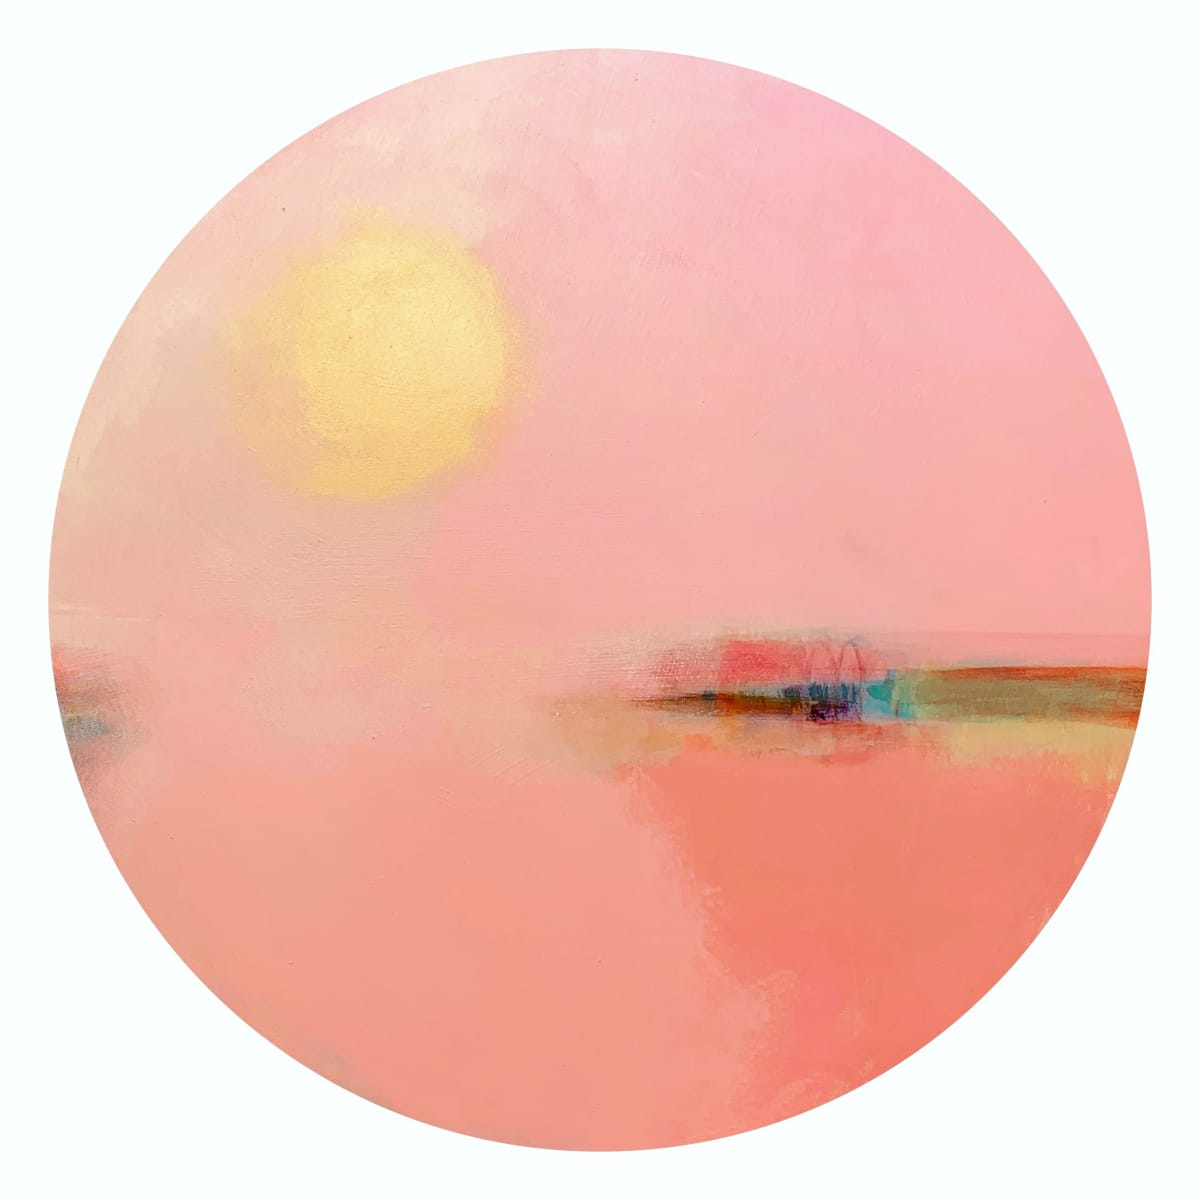 Kate Trafeli, The Arches (at Sunset), 2019